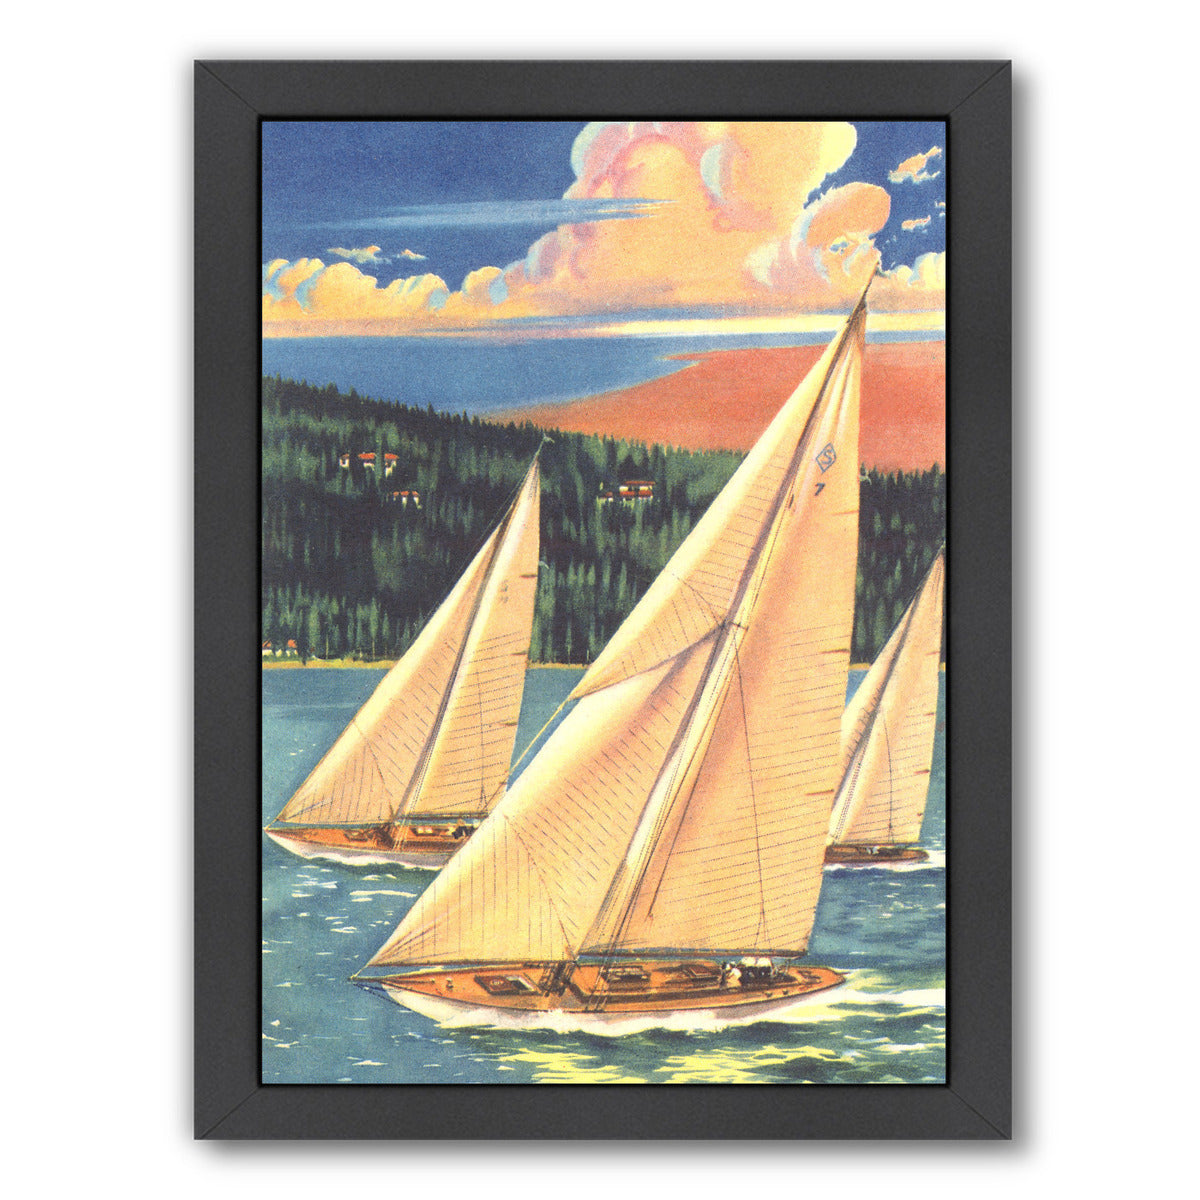 Three Sailboats by Found Image Press Framed Print - Americanflat